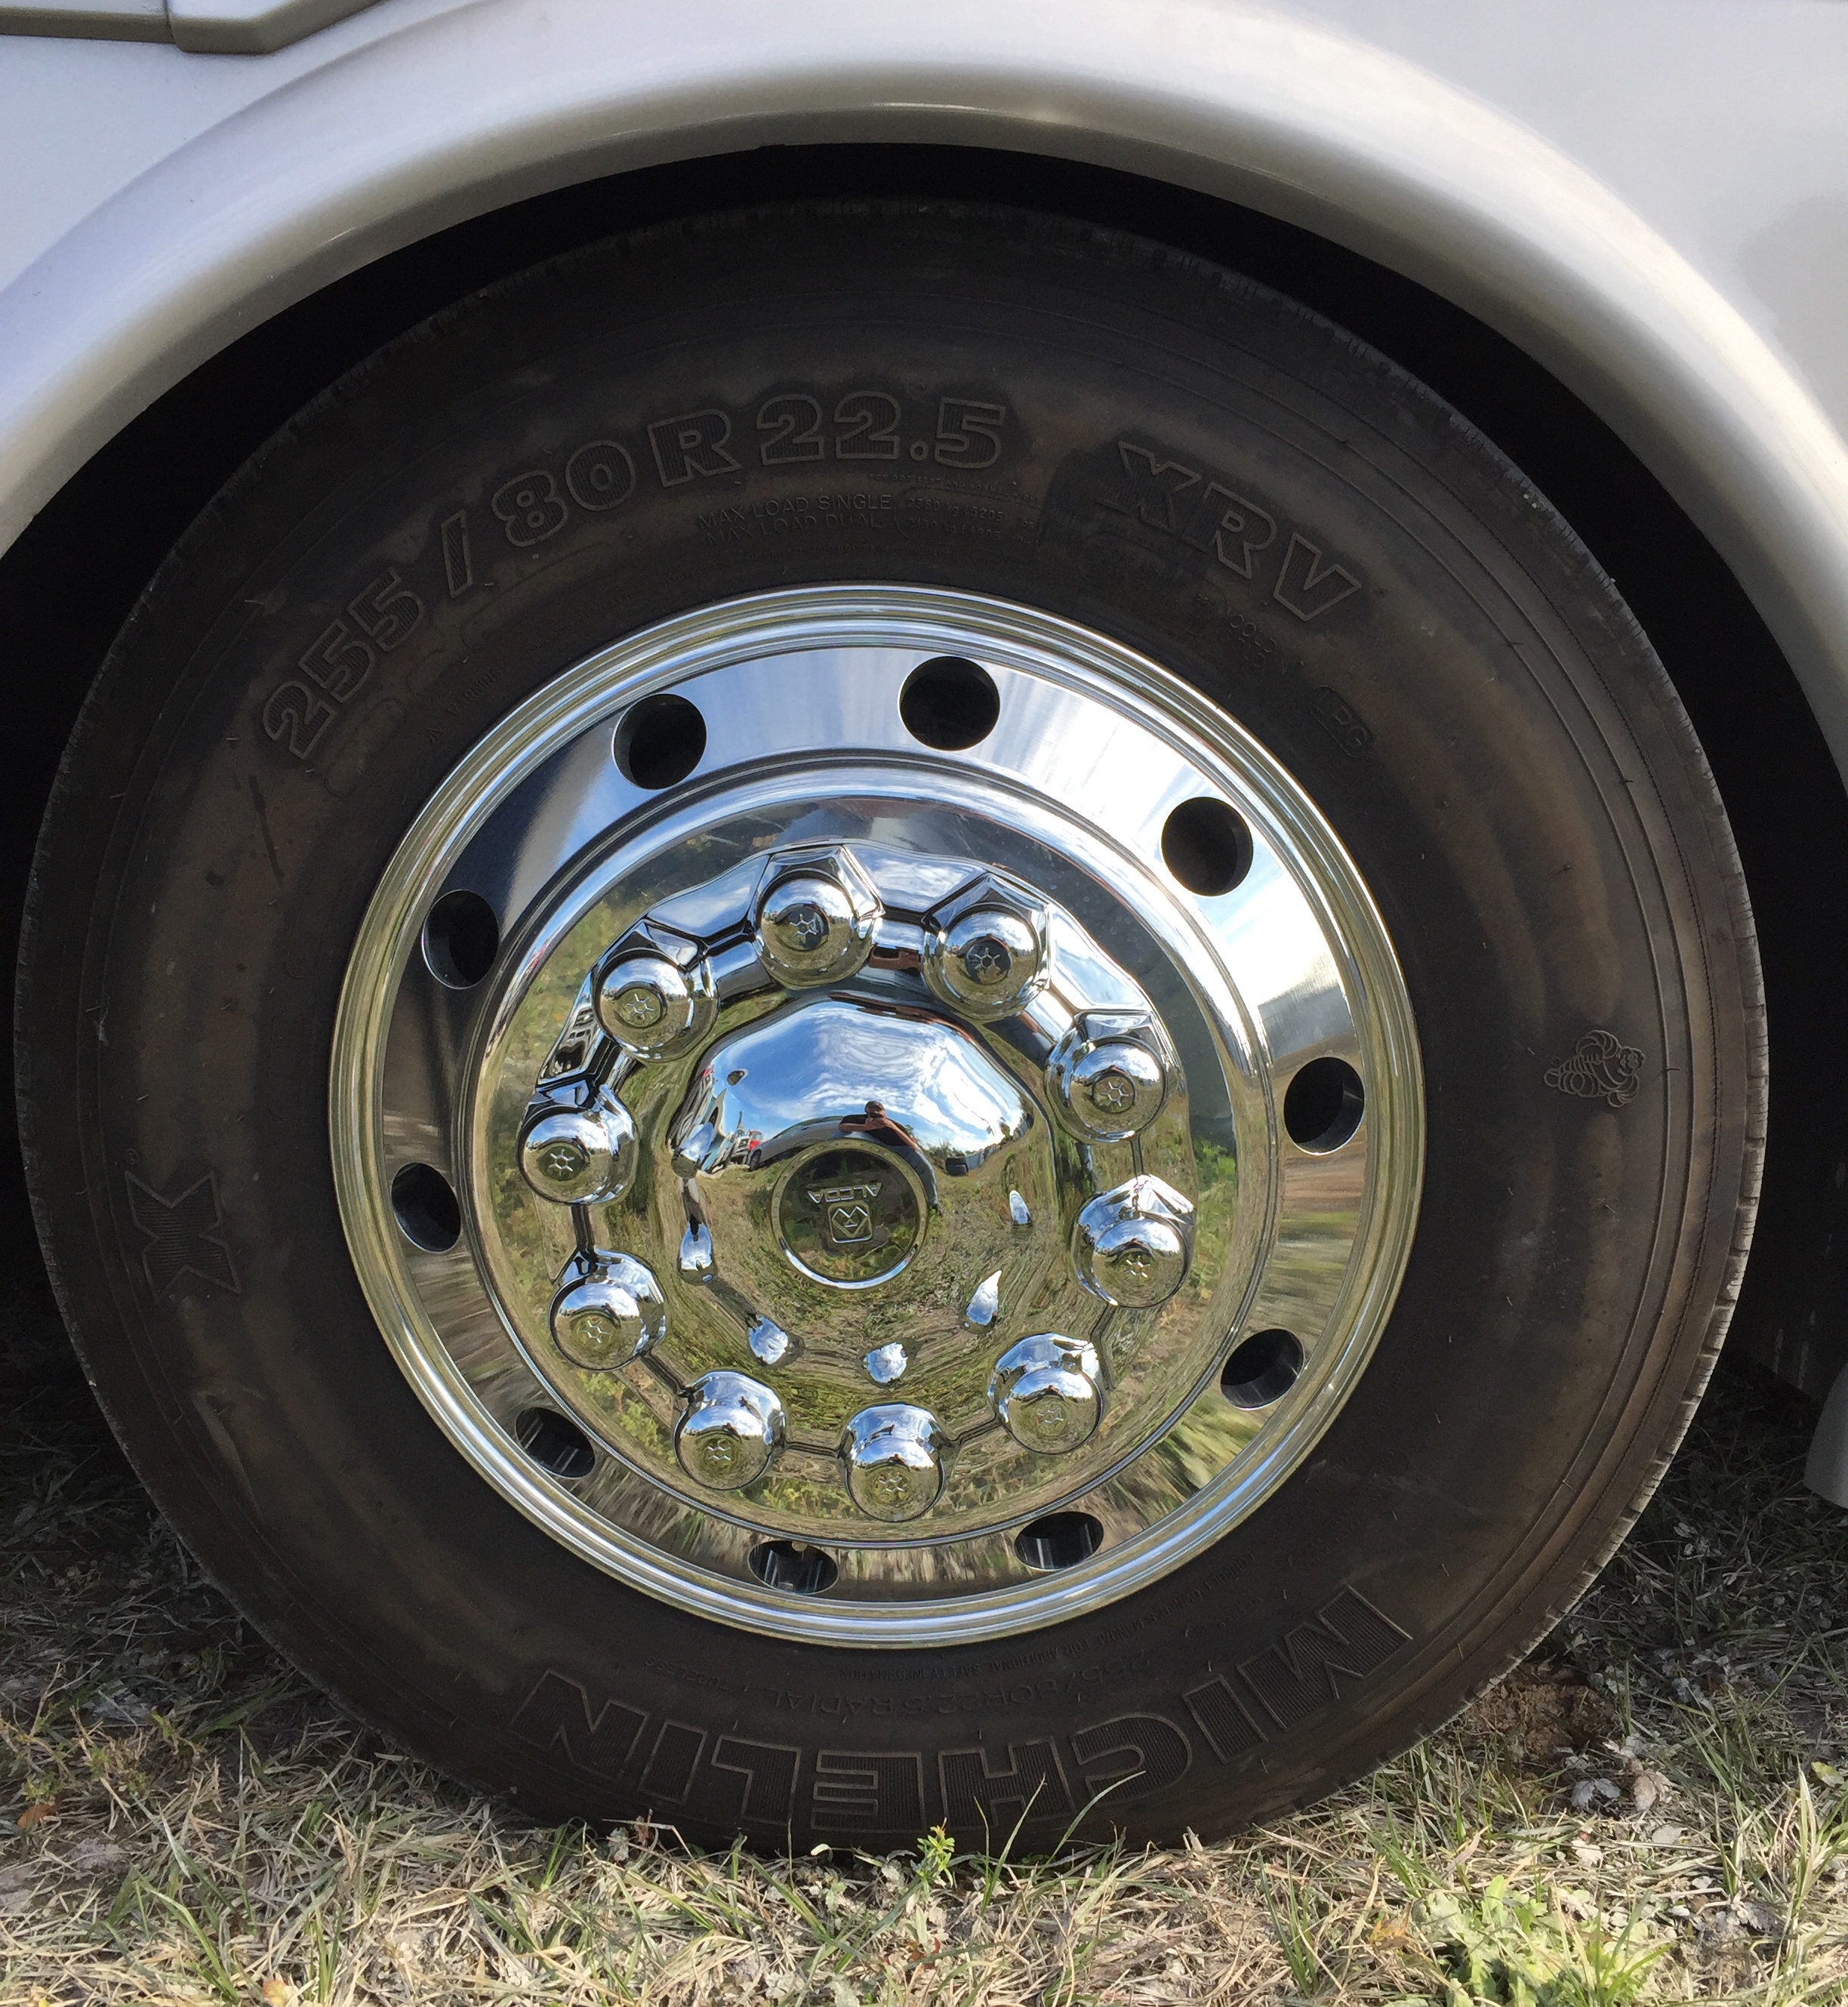 This is a new set of Alcoa Aluminum Alloy Rims We installed on this RV with a new set of Michelin XRV Tires.